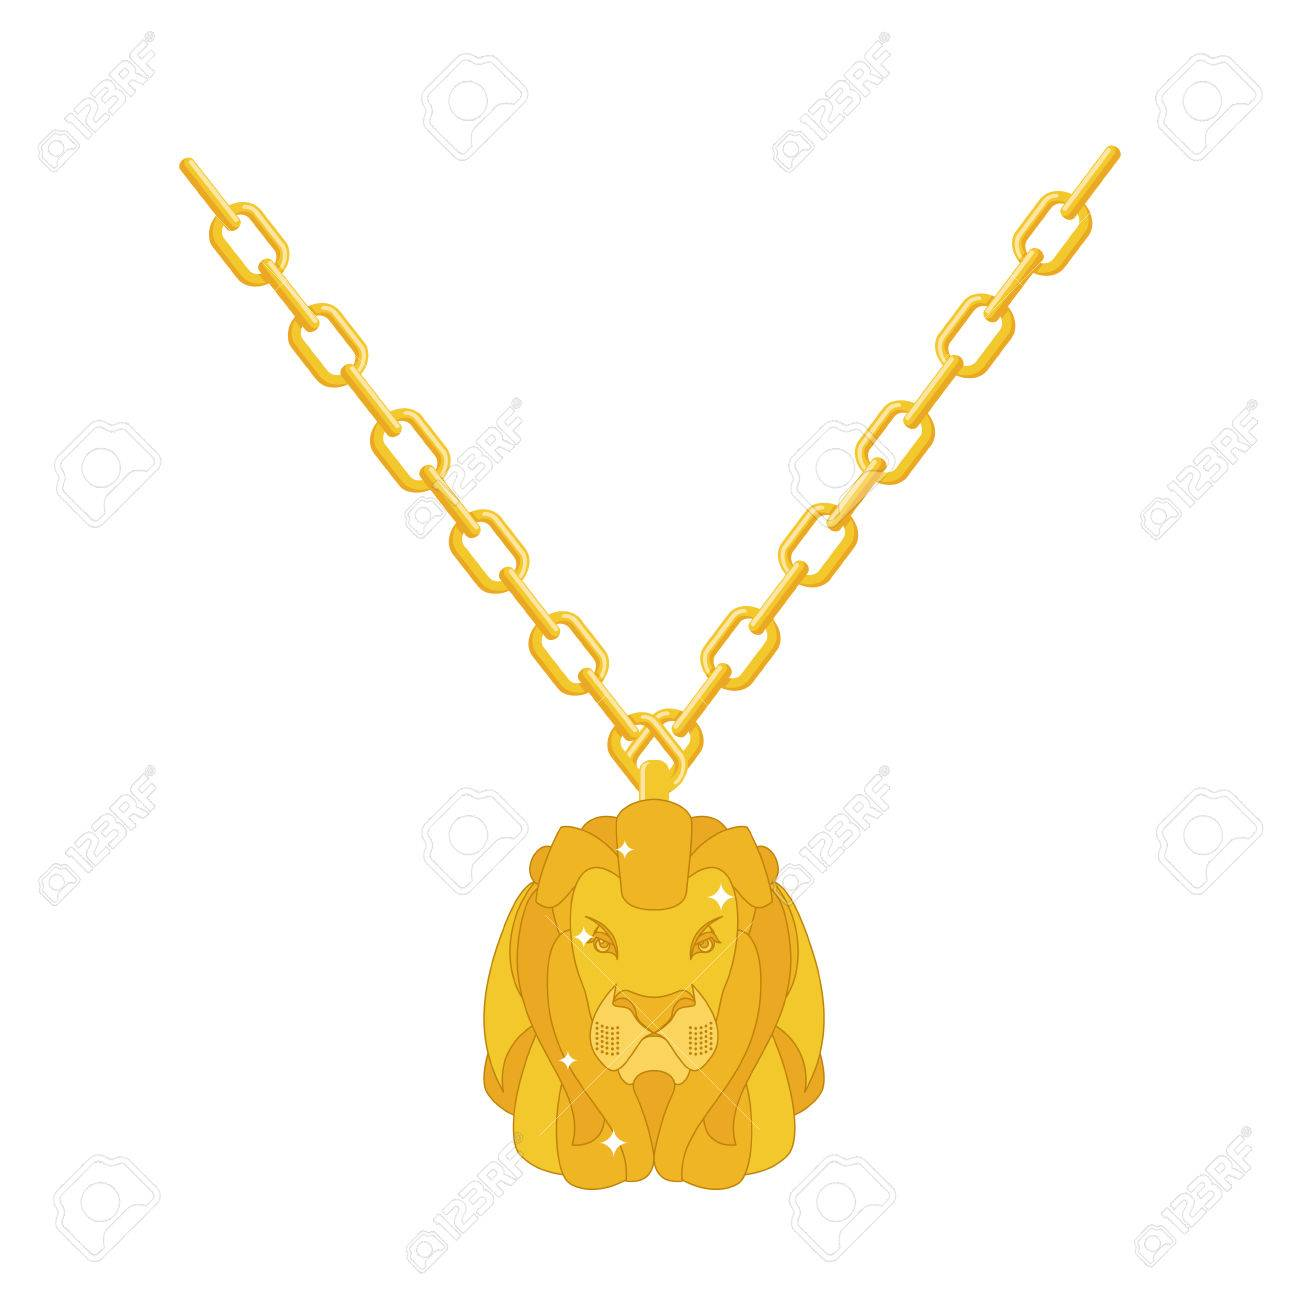 wholesale gold rich product necklace from lock expensive pendant bag silver pure design and yellow new